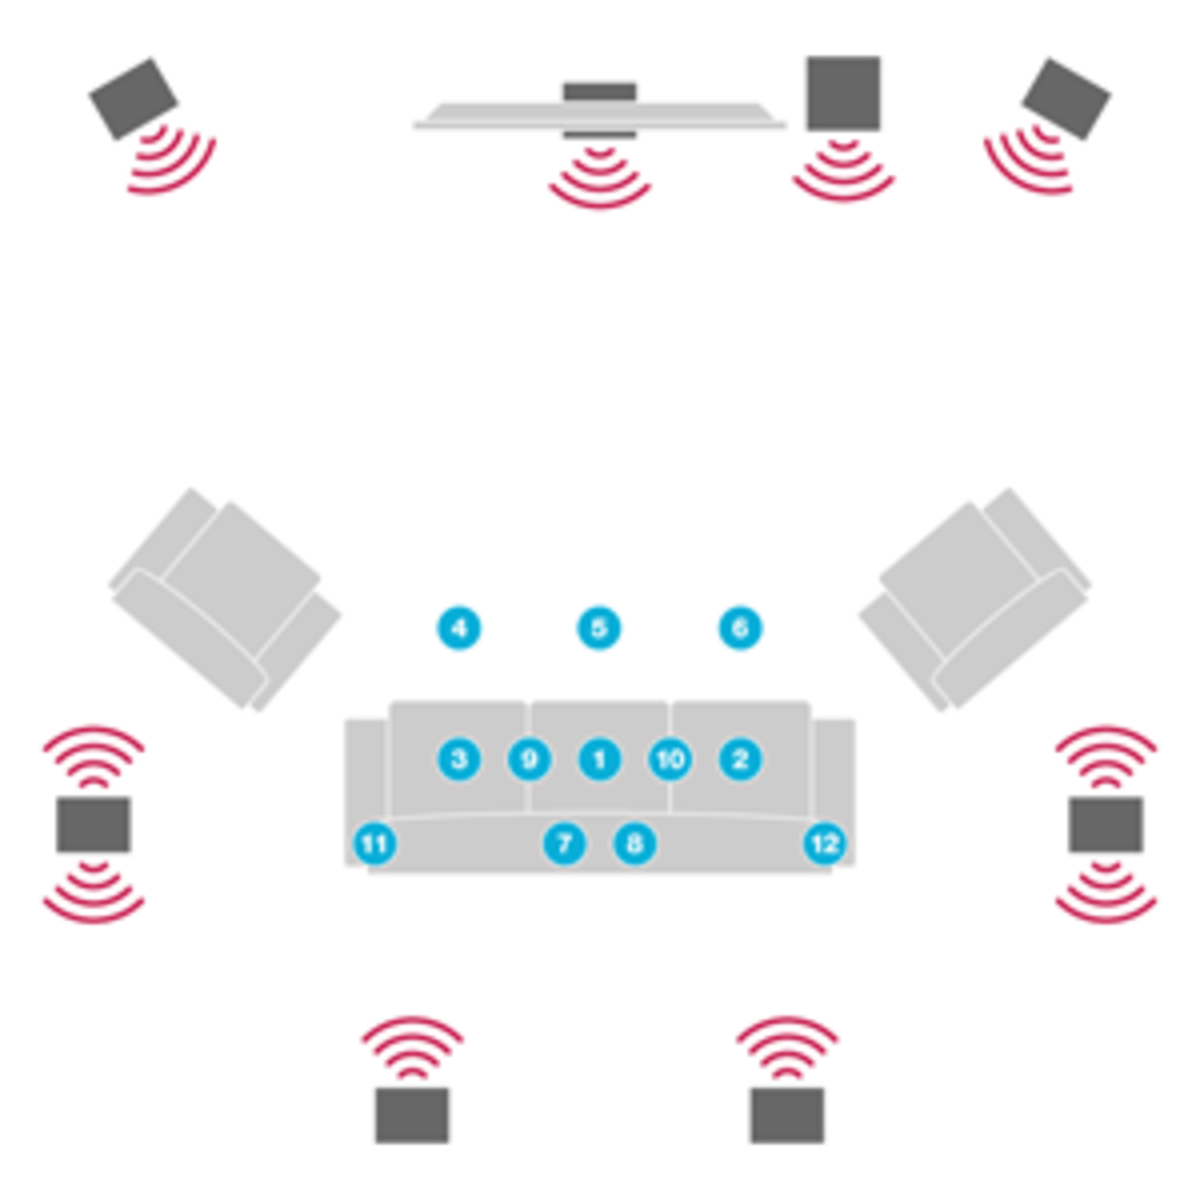 Microphone placement around seating area.